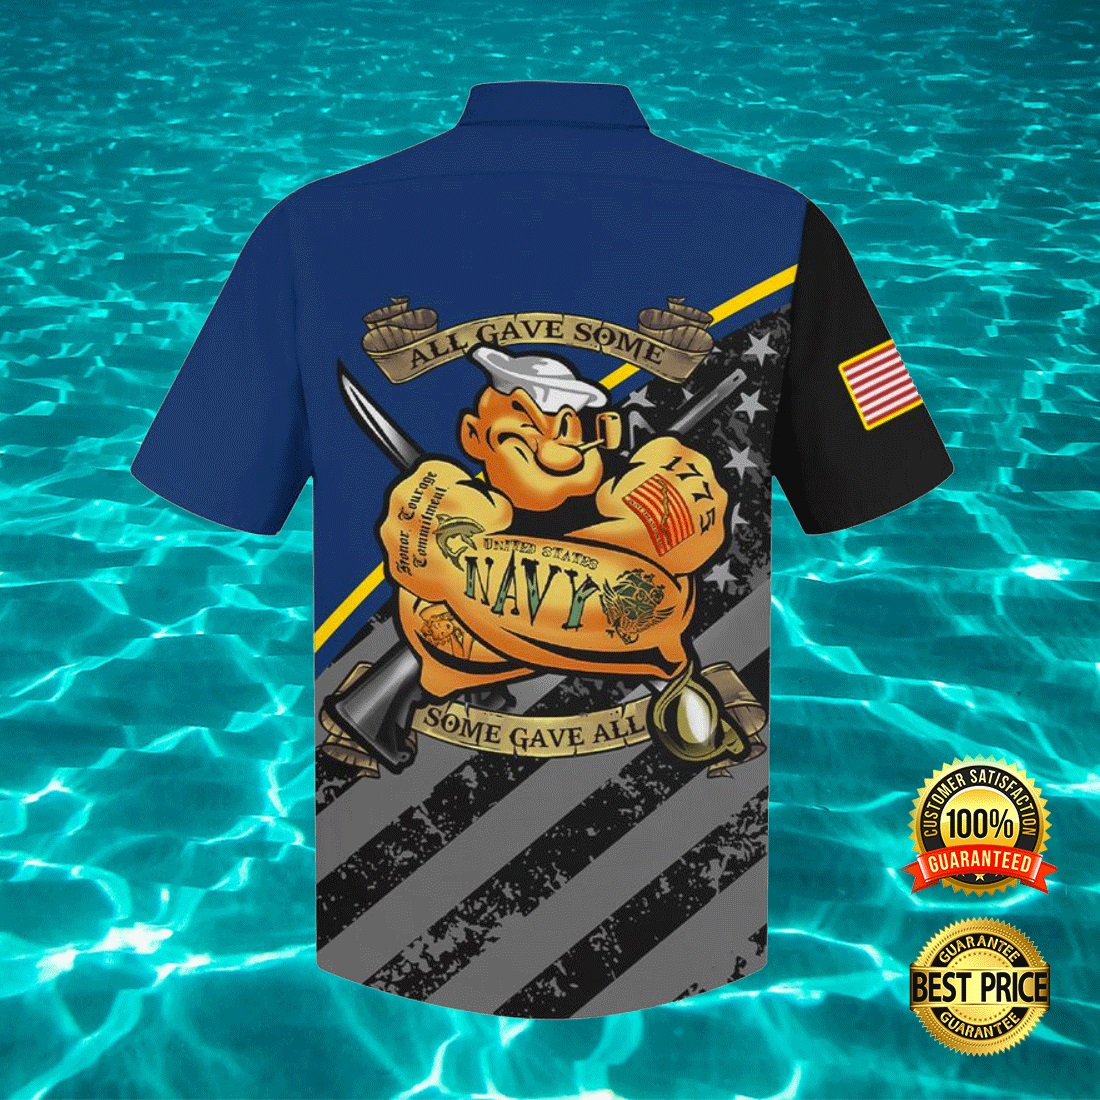 POPEYE US NAVY ALL GAVE SOME SOME GAVE ALL HAWAIIAN SHIRT 6